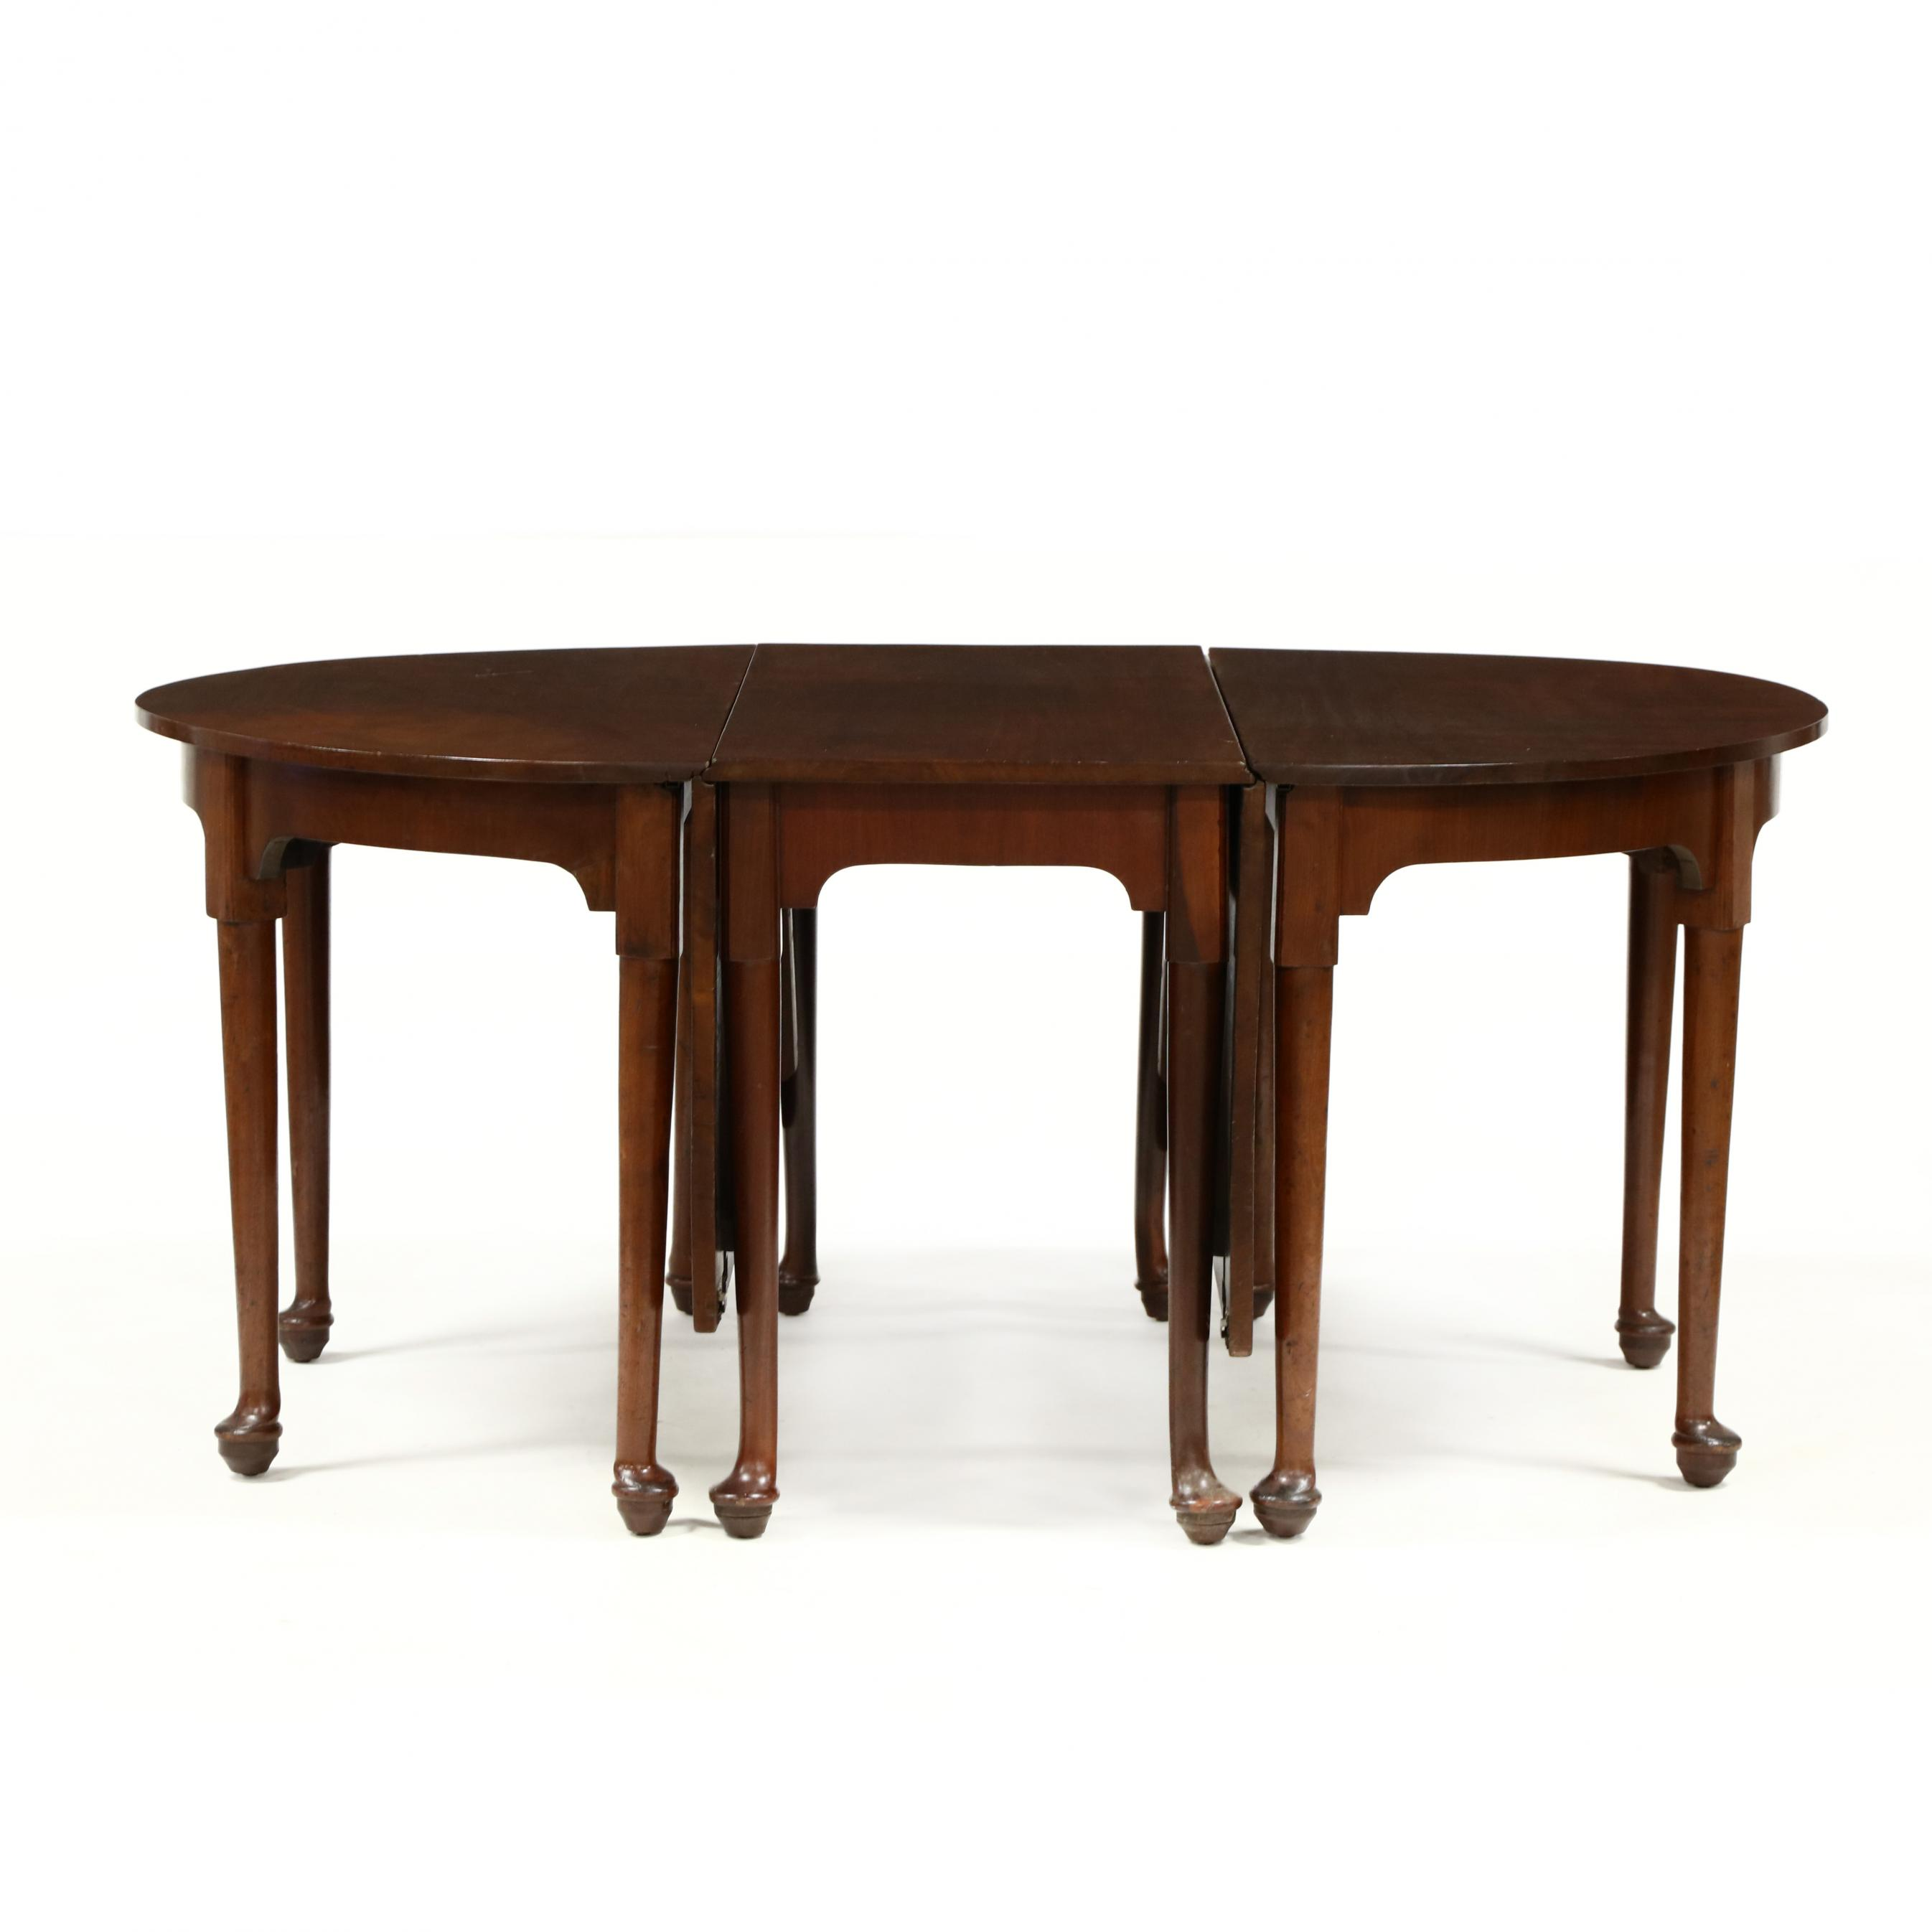 antique-english-queen-anne-style-mahogany-banquet-table